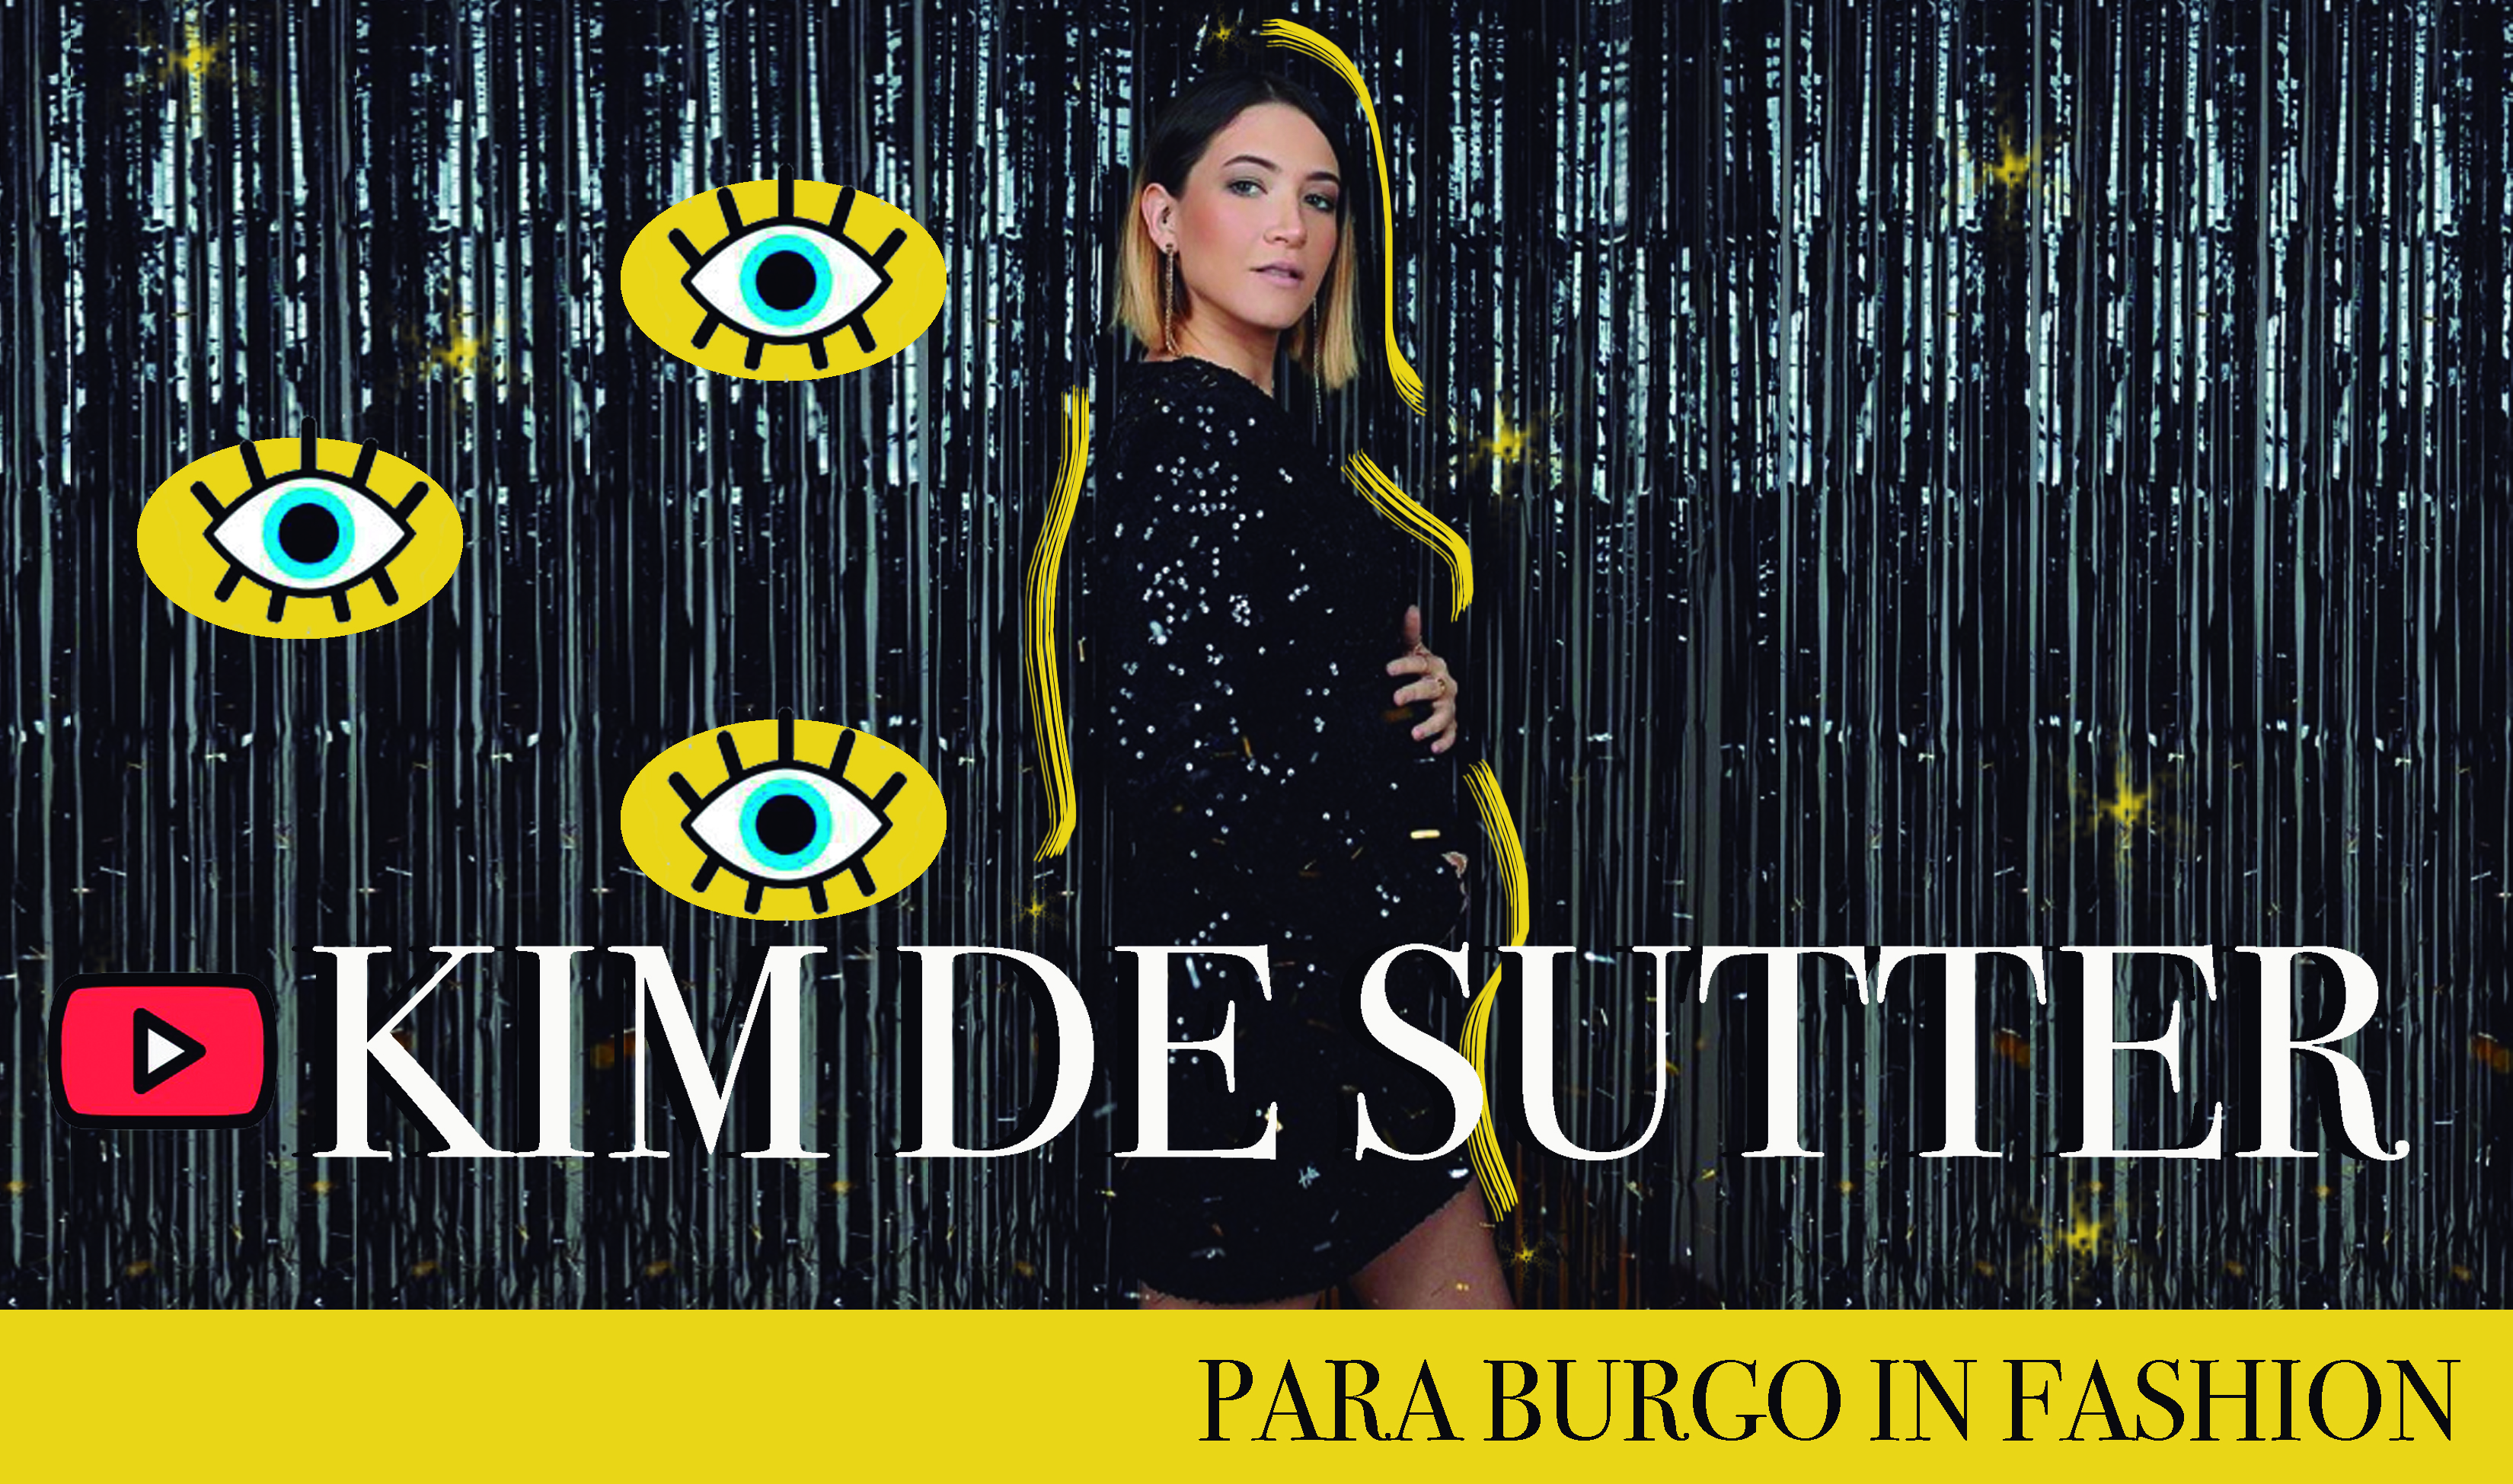 KIM DE SUTTER, NUESTRA FASHION MOM BURGO 2019.